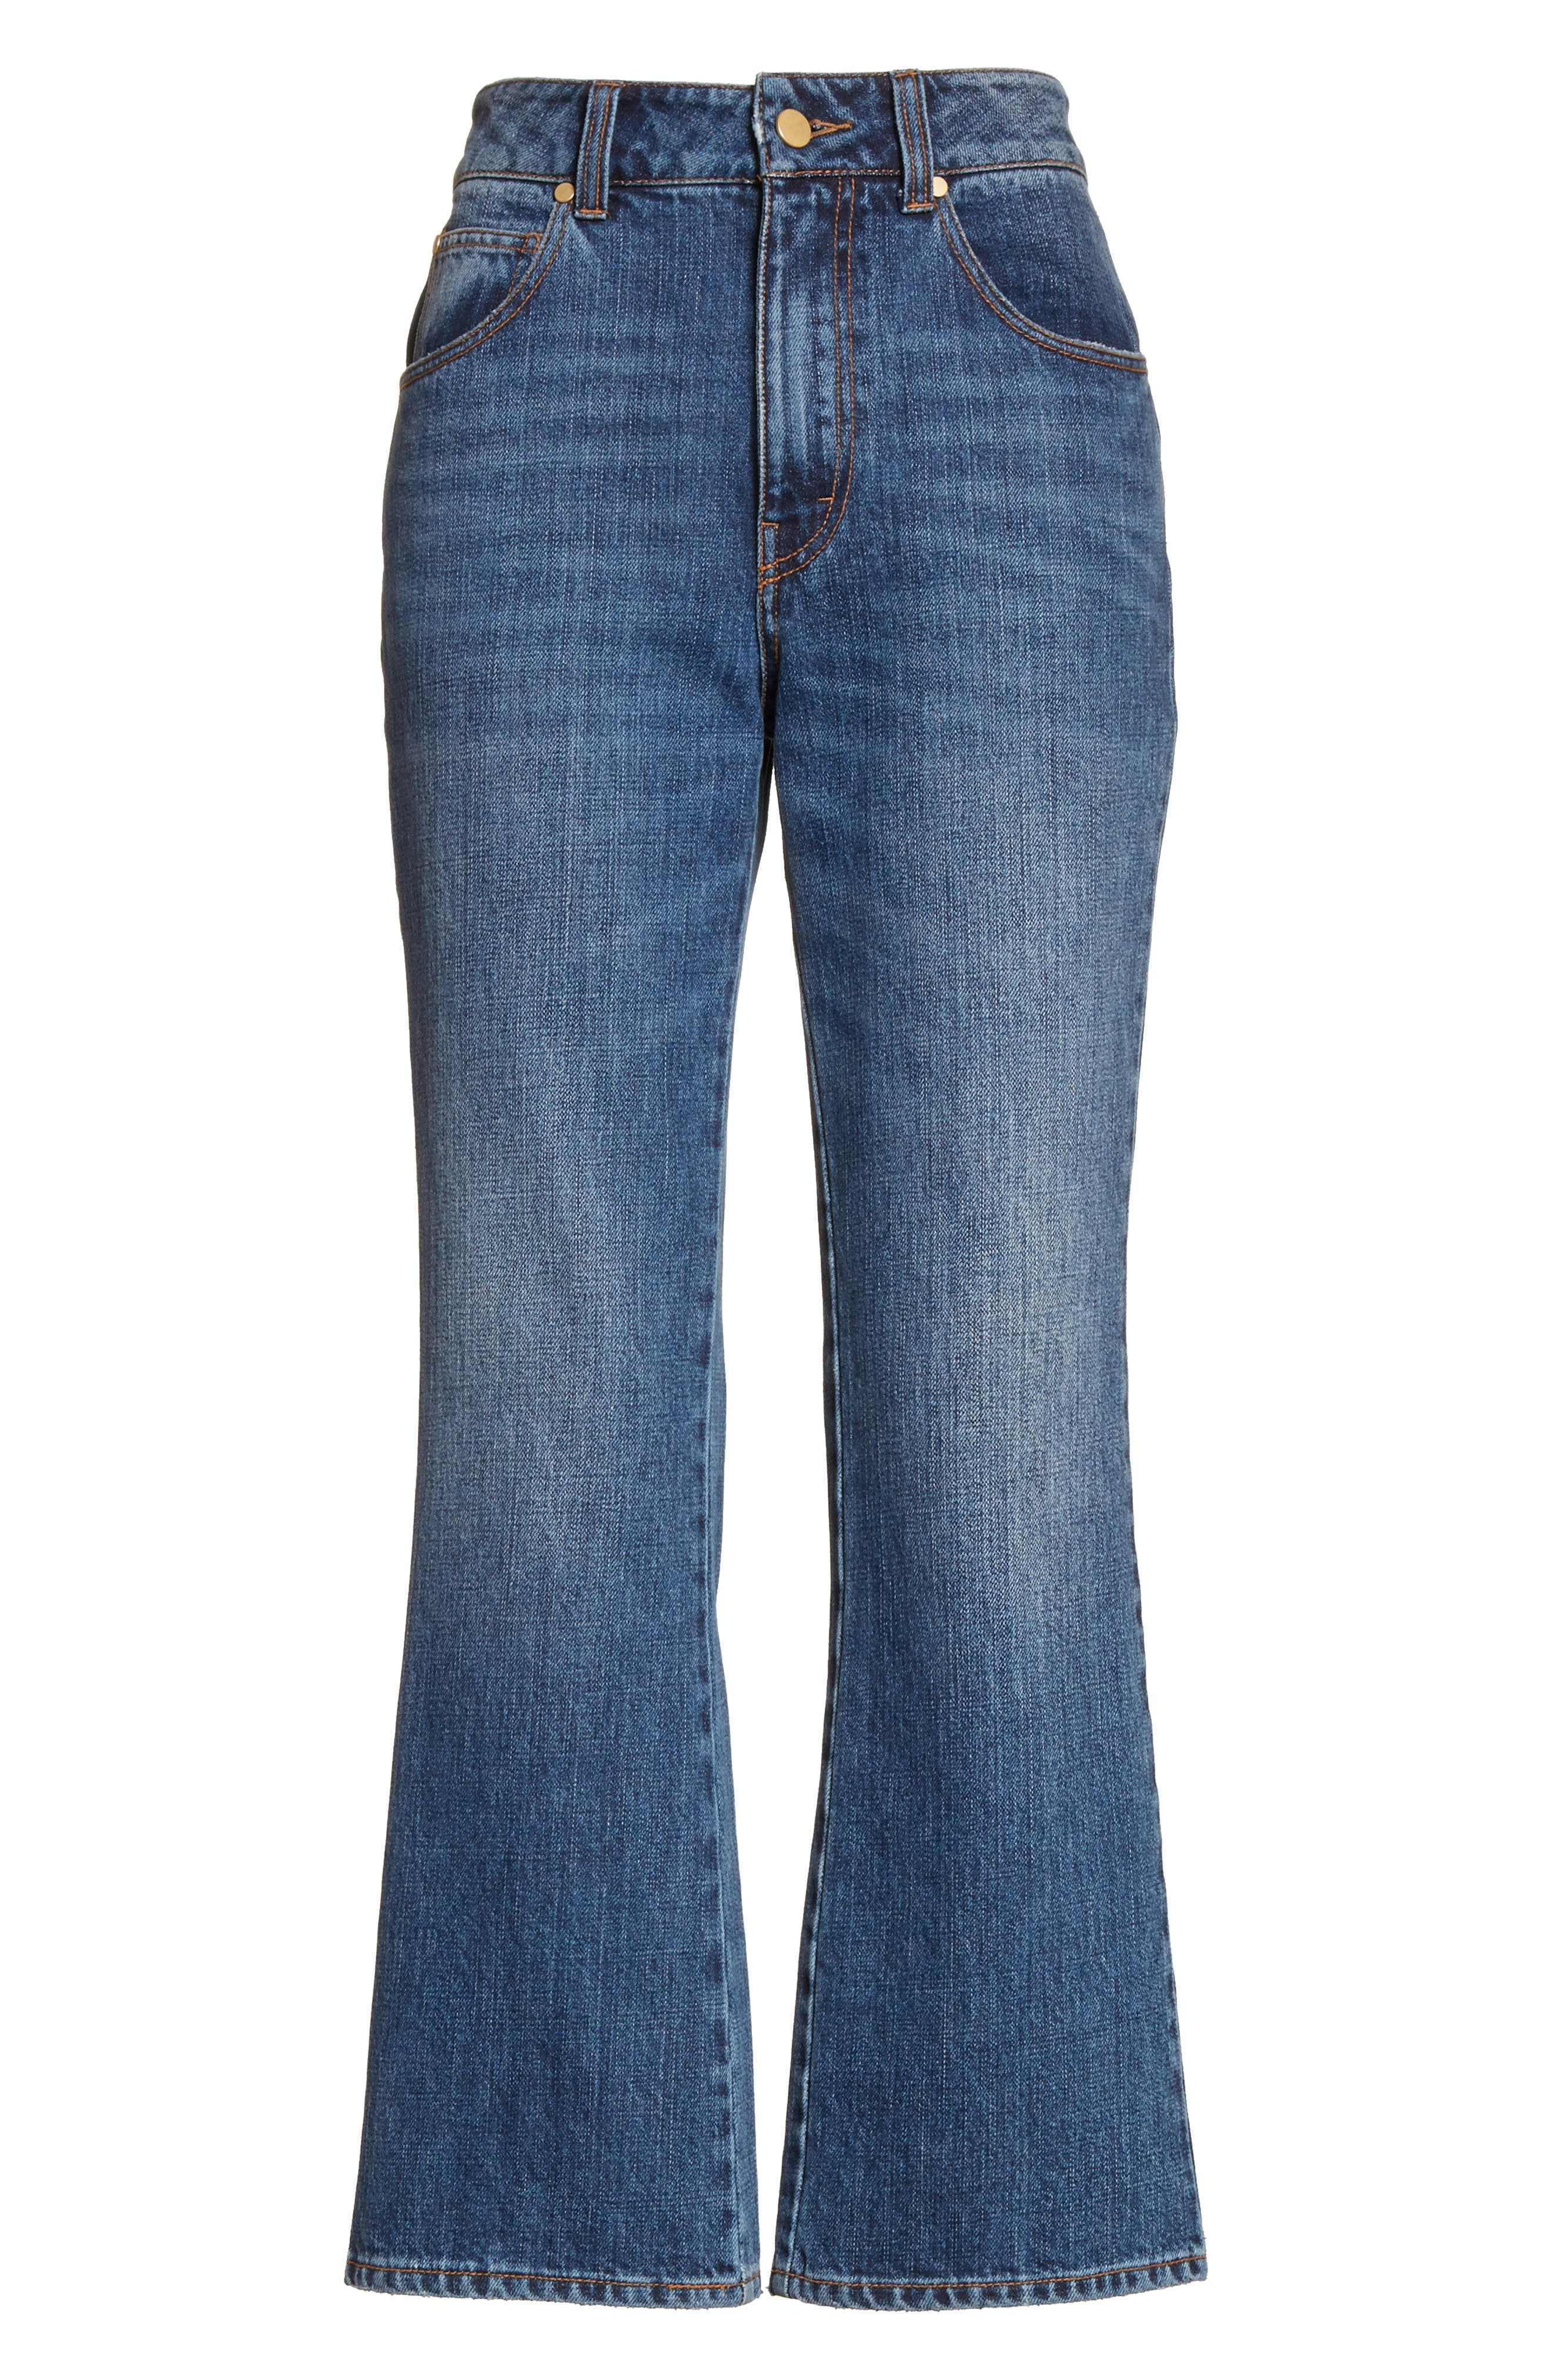 Ankle Flare High Waist Jeans,                             Alternate thumbnail 6, color,                             401